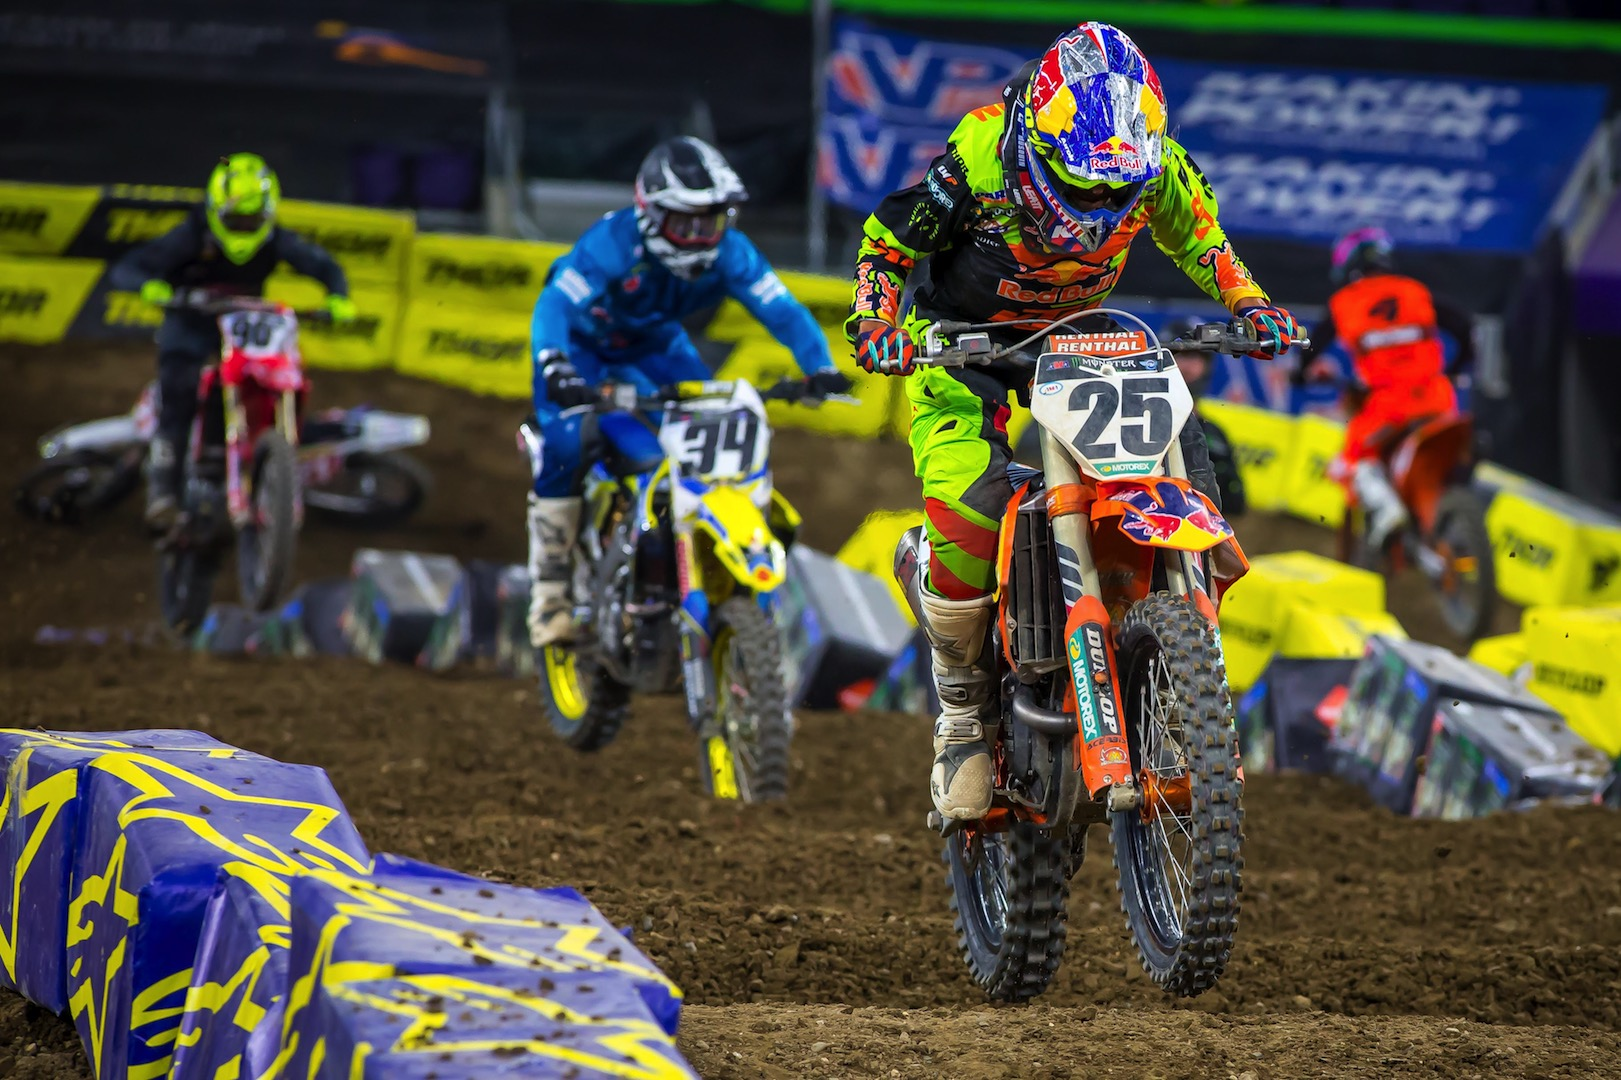 2018 Minneapolis Supercross Results and Coverage - Musquin and Peick